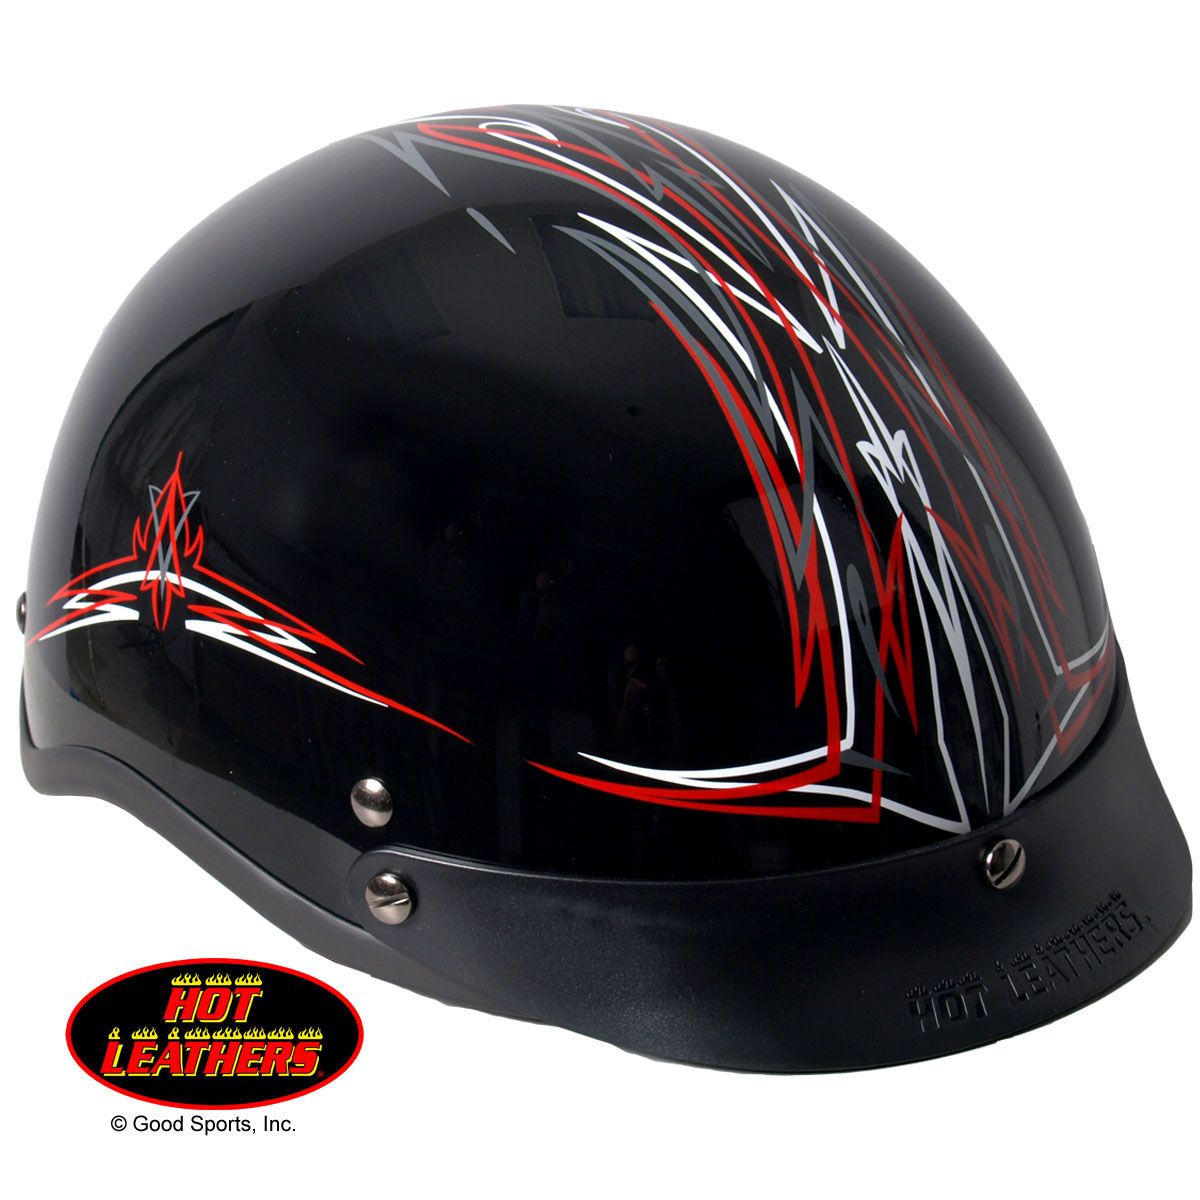 863ba4d2661 Hot Leathers Pinstripe Motorcycle Helmet - would match my new bike ...